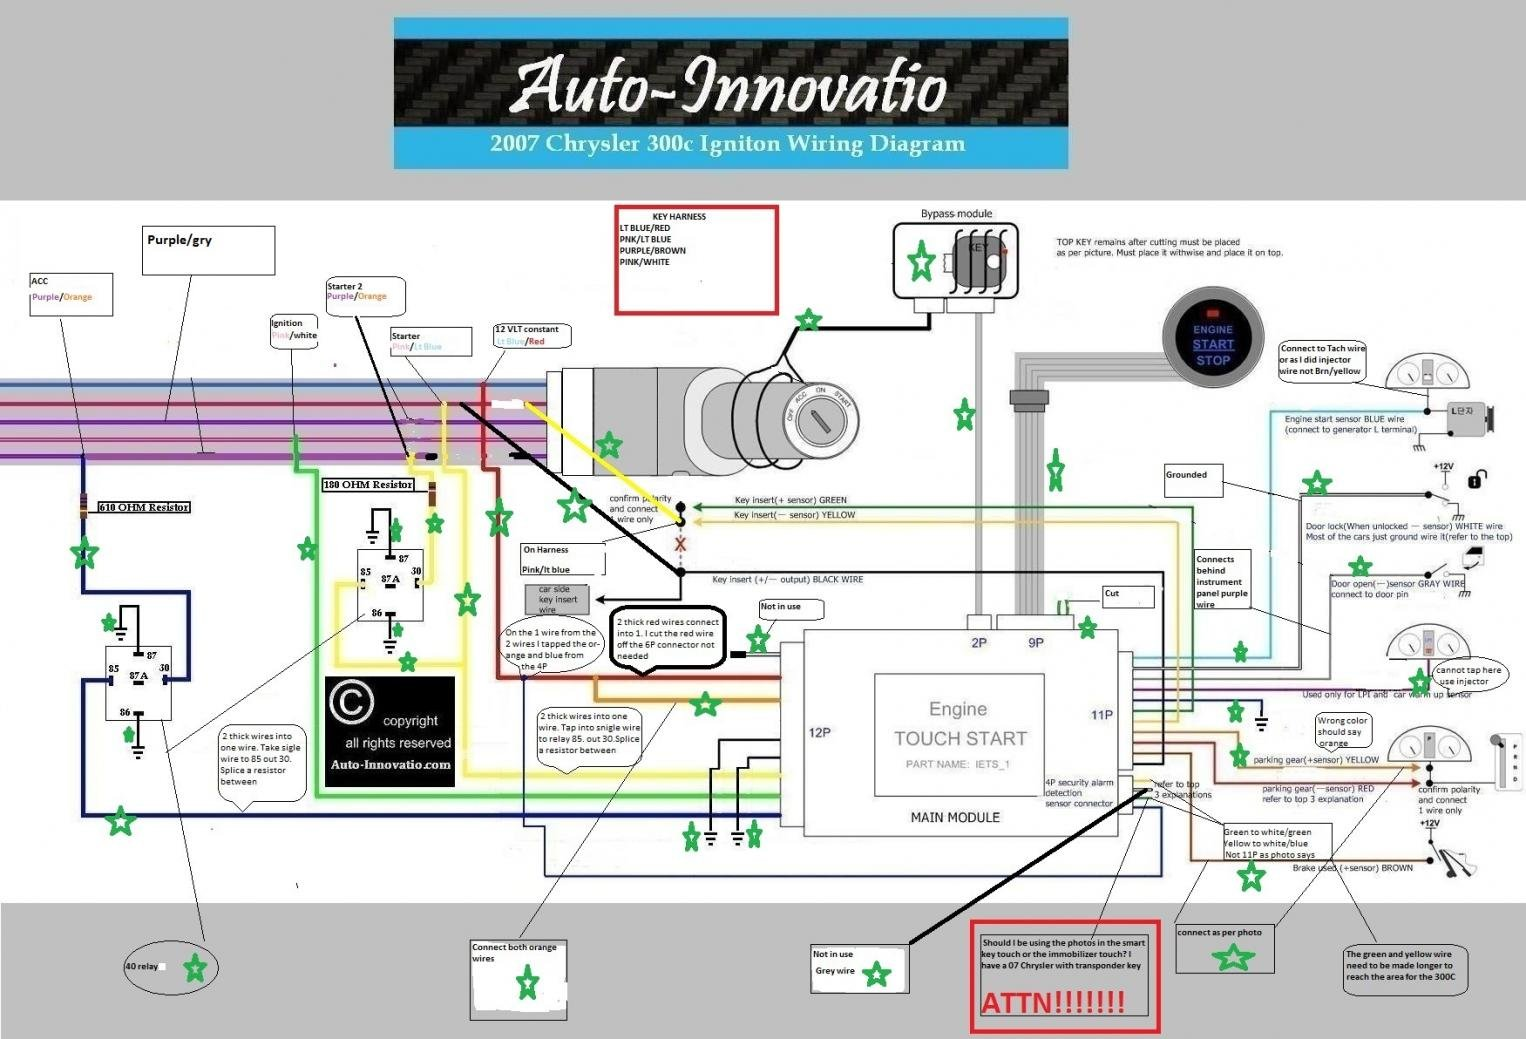 Ignition Switch Wiring Diagram For Chrysler 300 C Trusted Dodge Toro